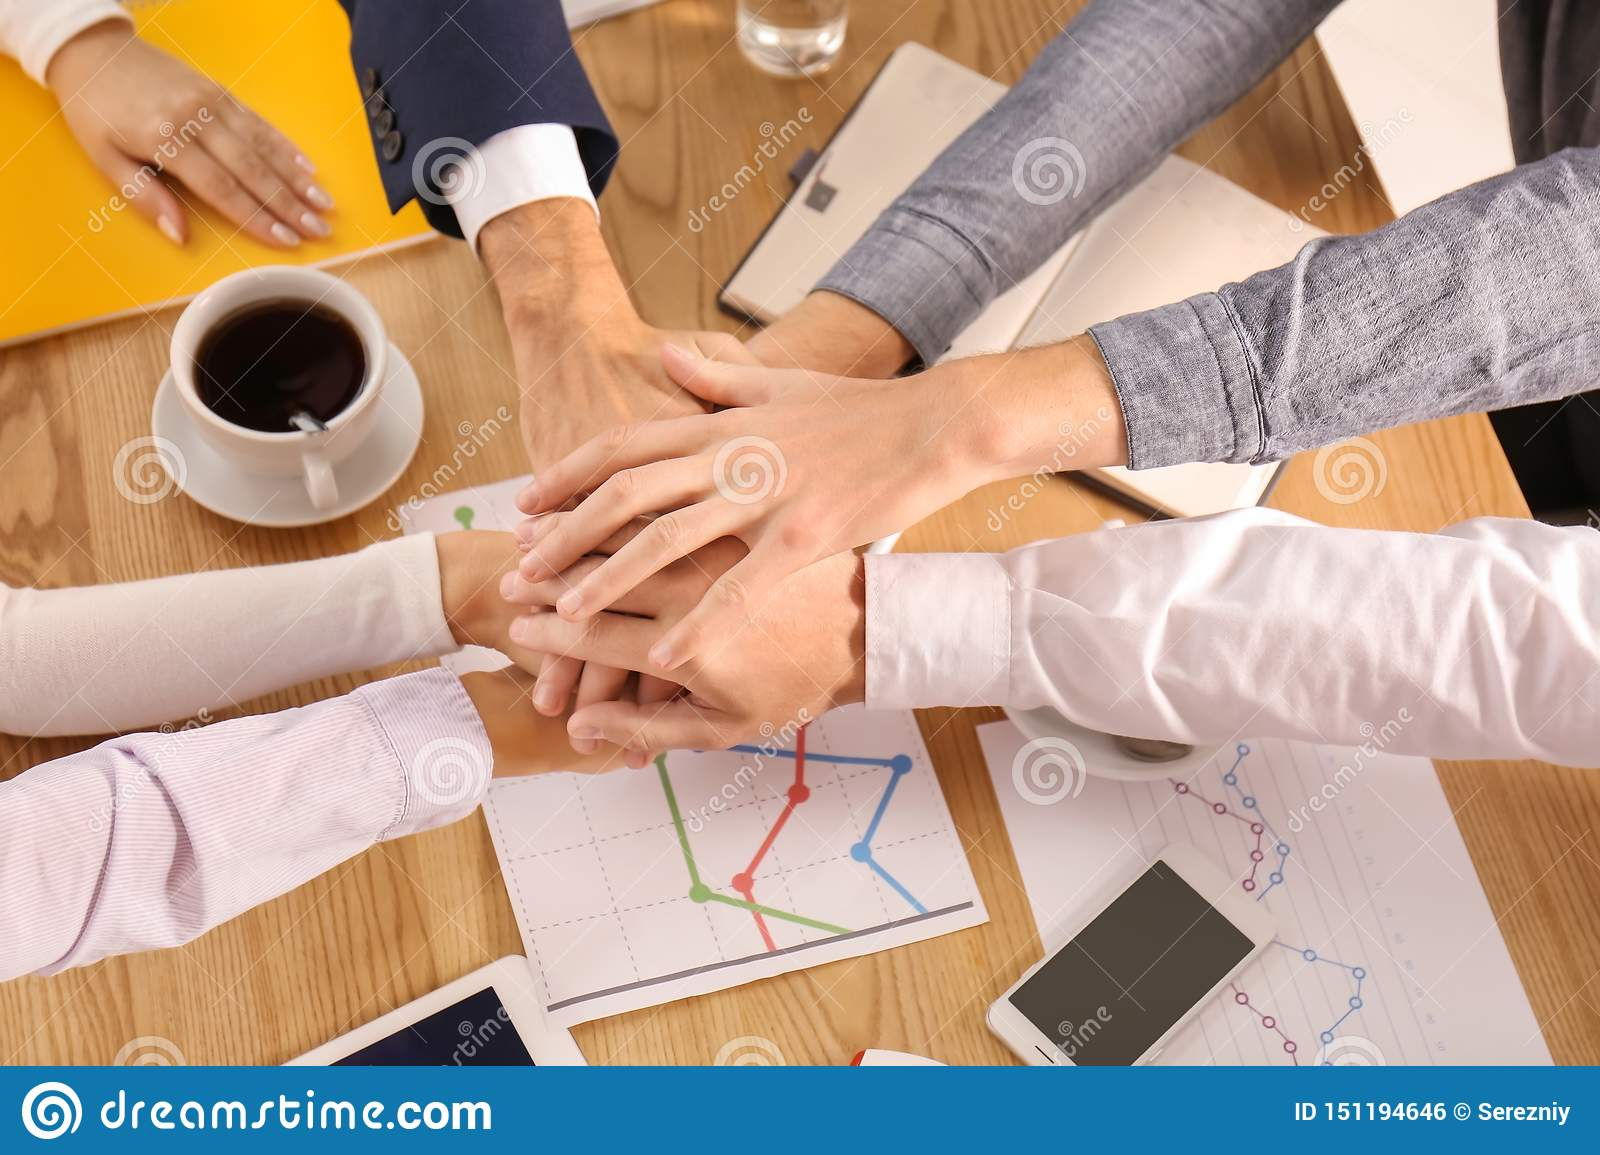 Business Team Putting Hands Together As Symbol Of Unity Stock Photo Image Of Professional Background 151194646